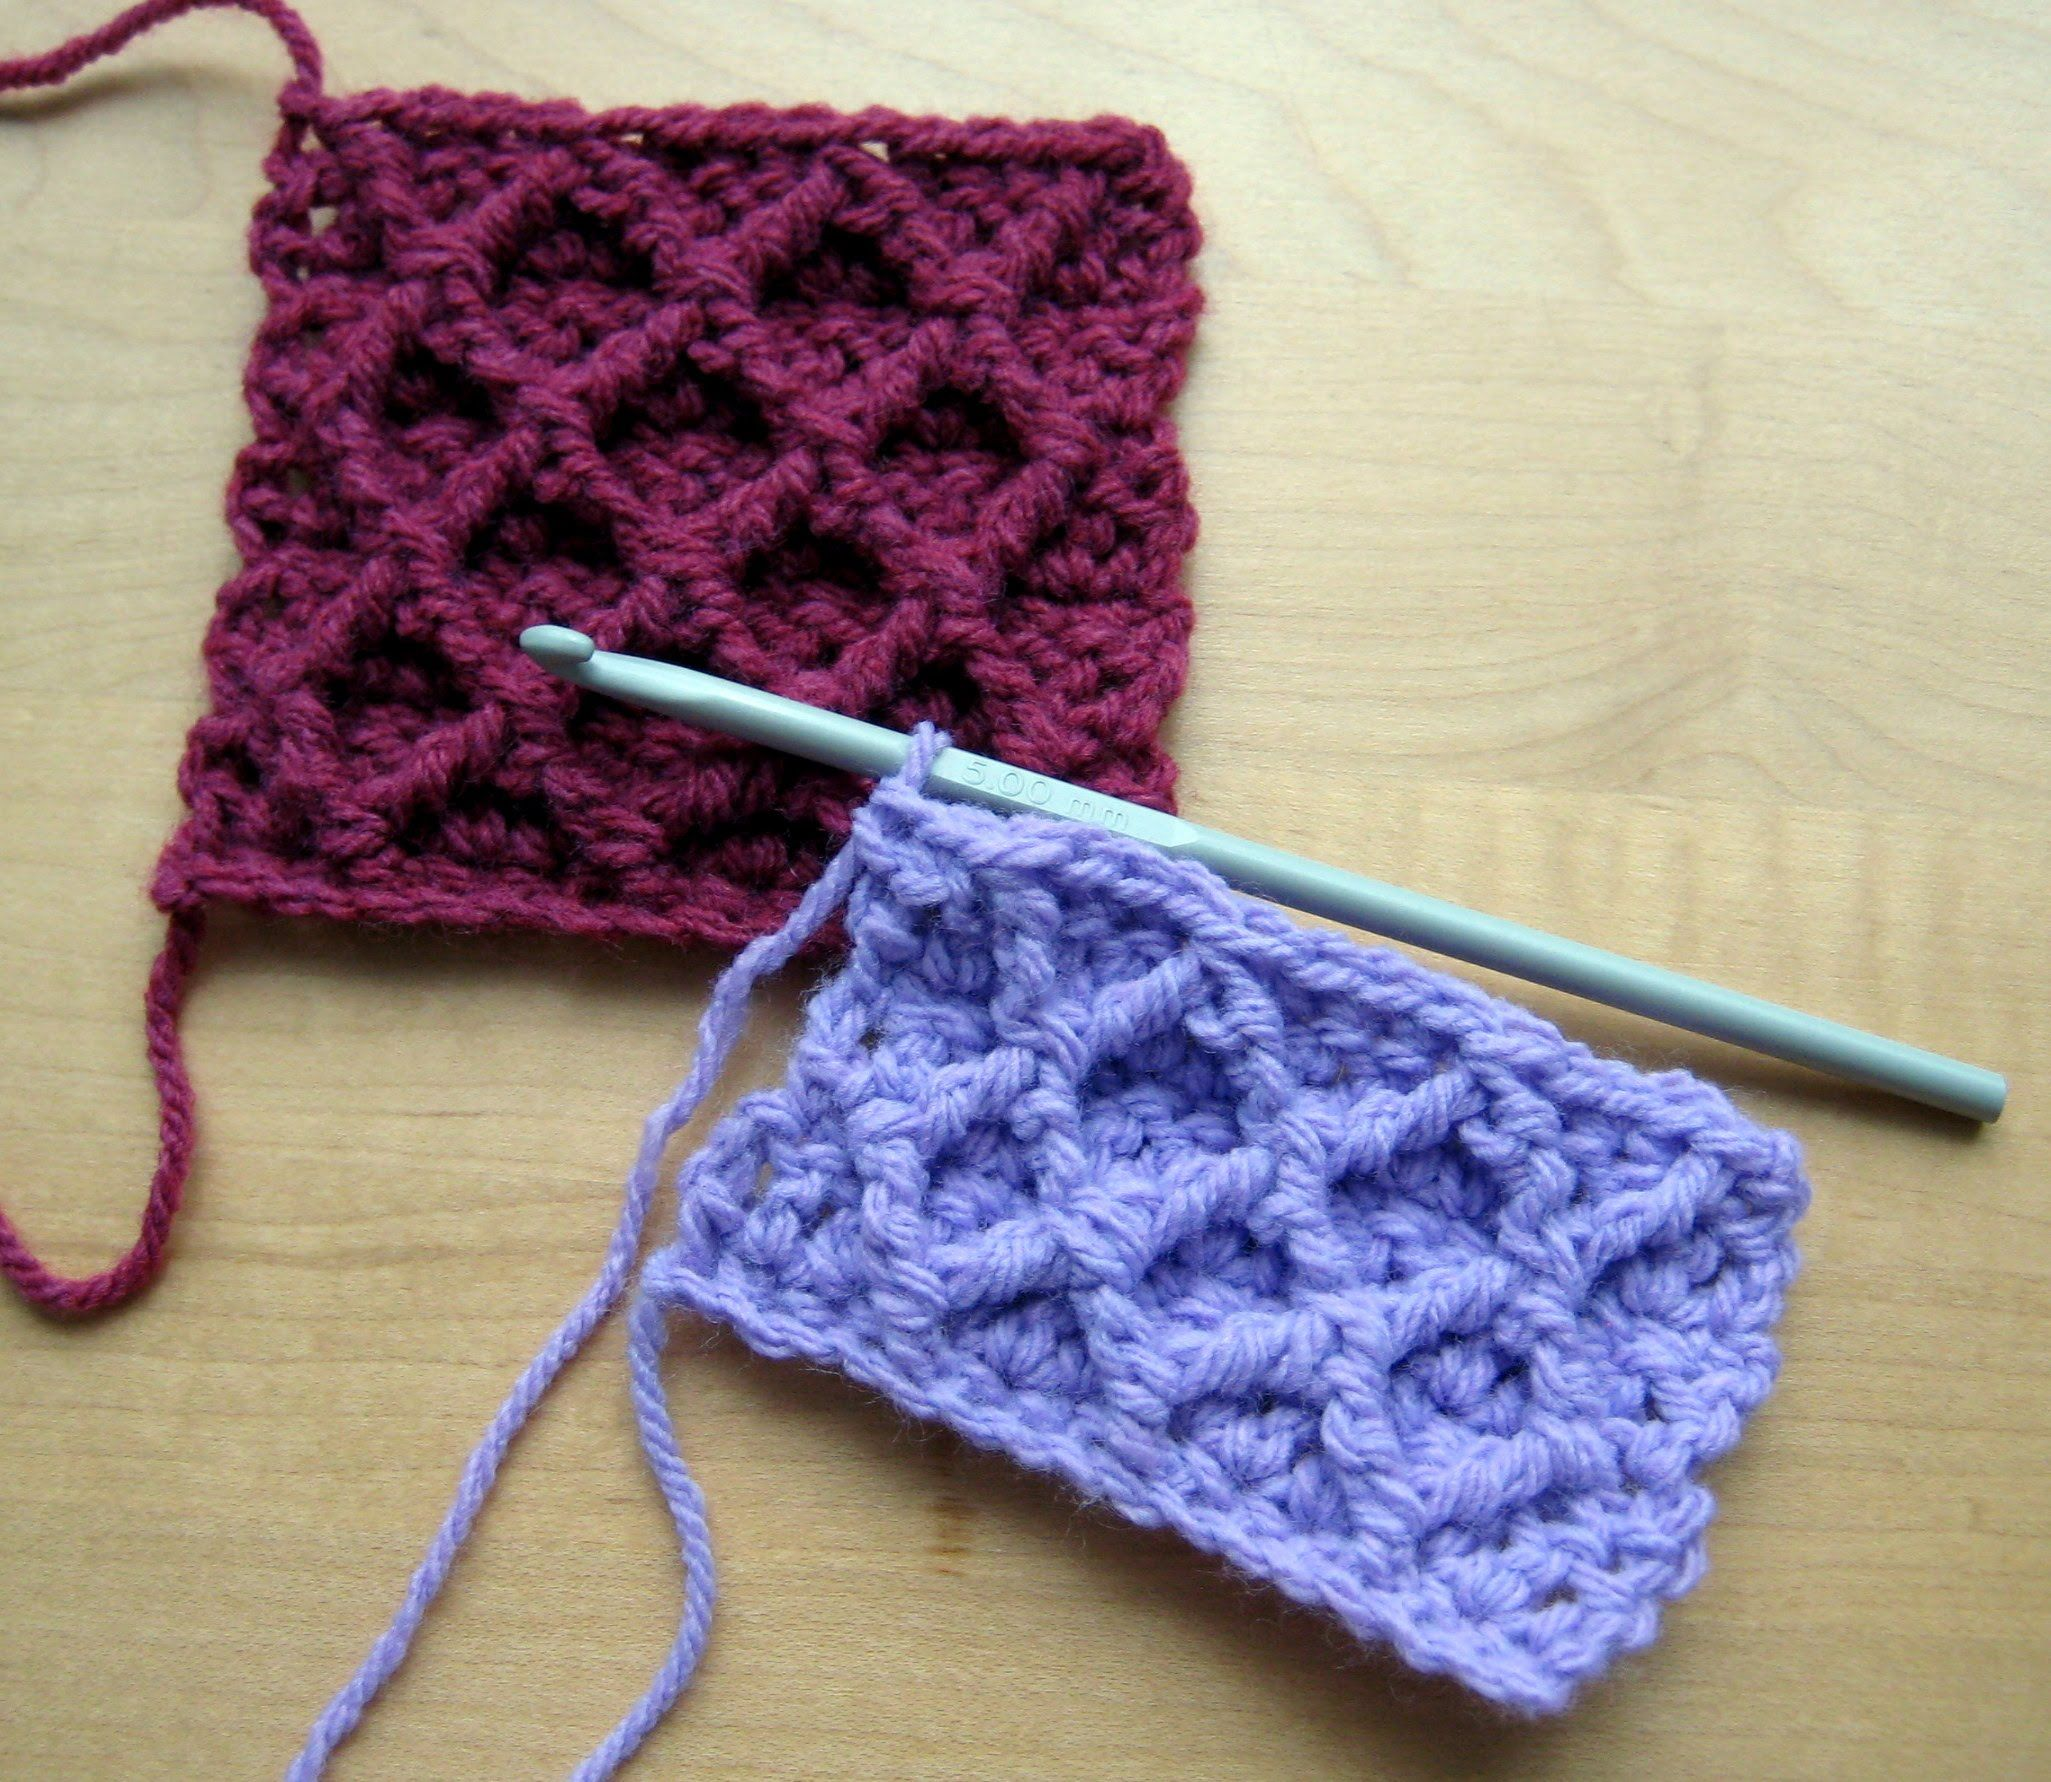 A tutorial on how to crochet the diamond trellis stitch using a tutorial on how to crochet the diamond trellis stitch using front post treble crochet stitches bankloansurffo Image collections